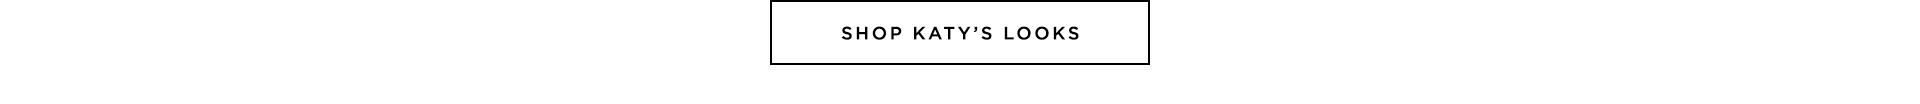 Shop Katy's Looks